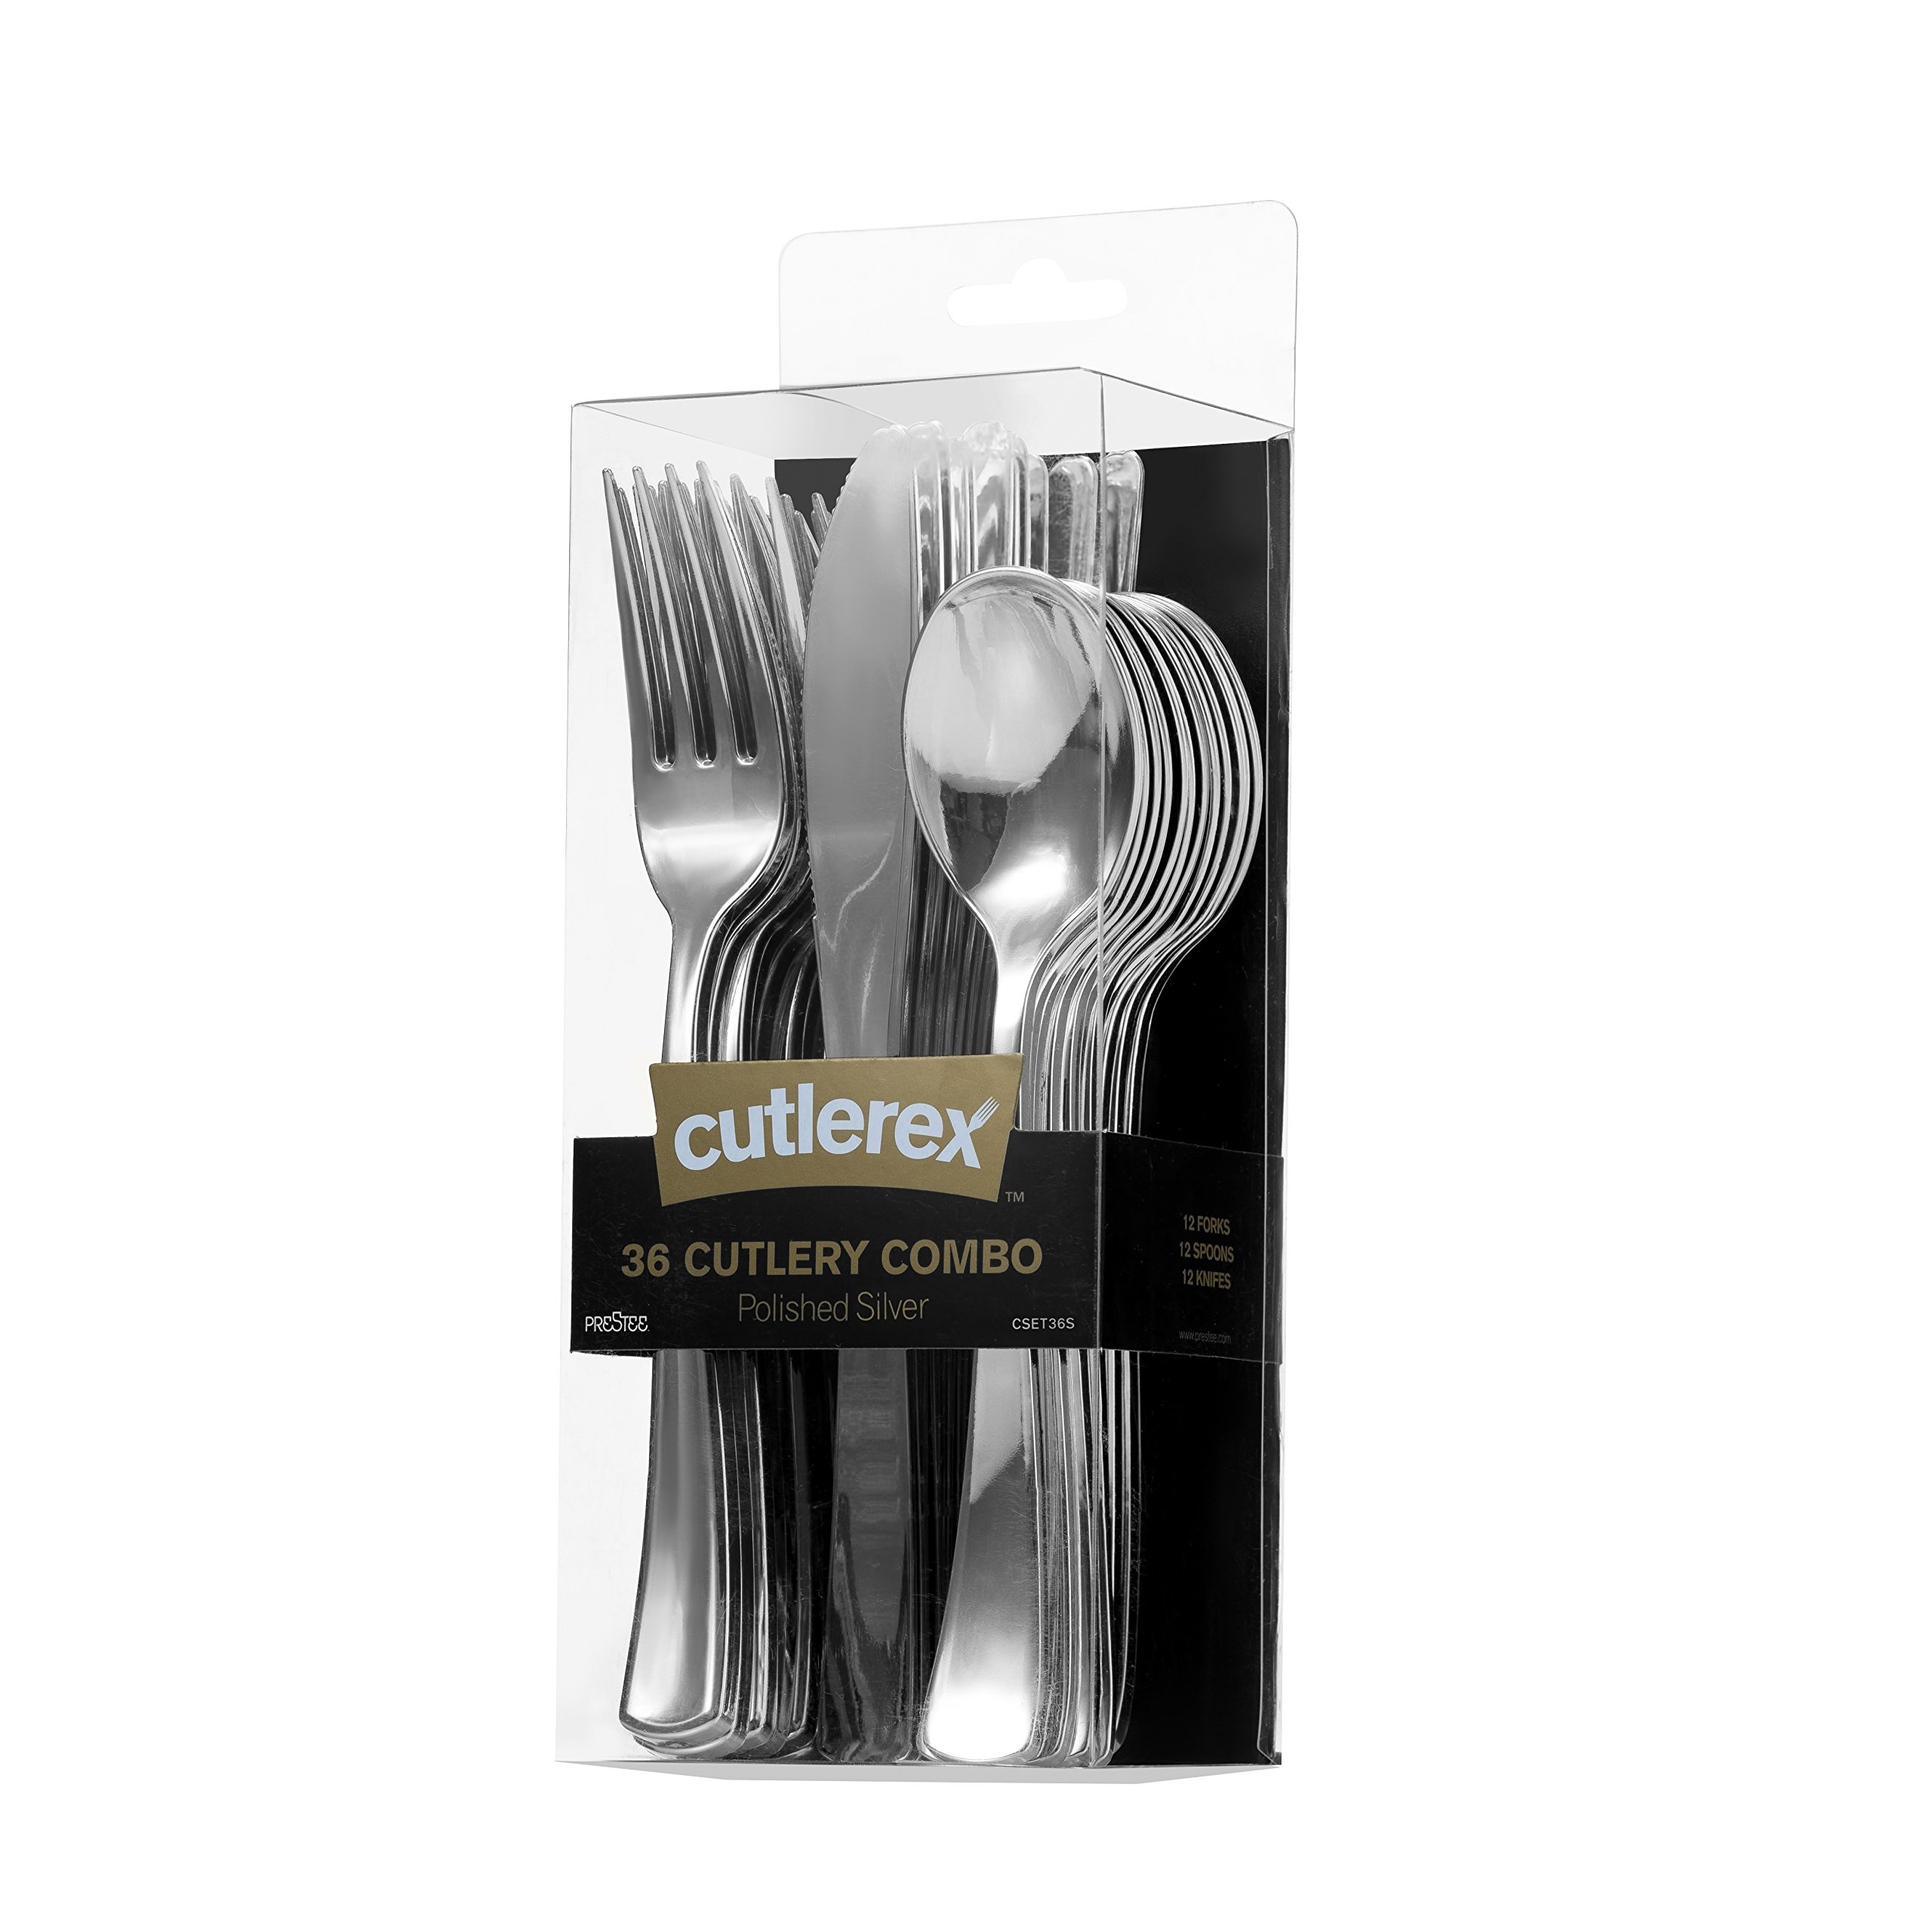 36 Plastic Silverware Set | Silver Plastic Cutlery Set | Disposable Silverware Set | 12 Plastic Forks, 12 Plastic Spoons, 12 Plastic Knives | Heavy Duty Disposable Flatware Plastic Utensils Set